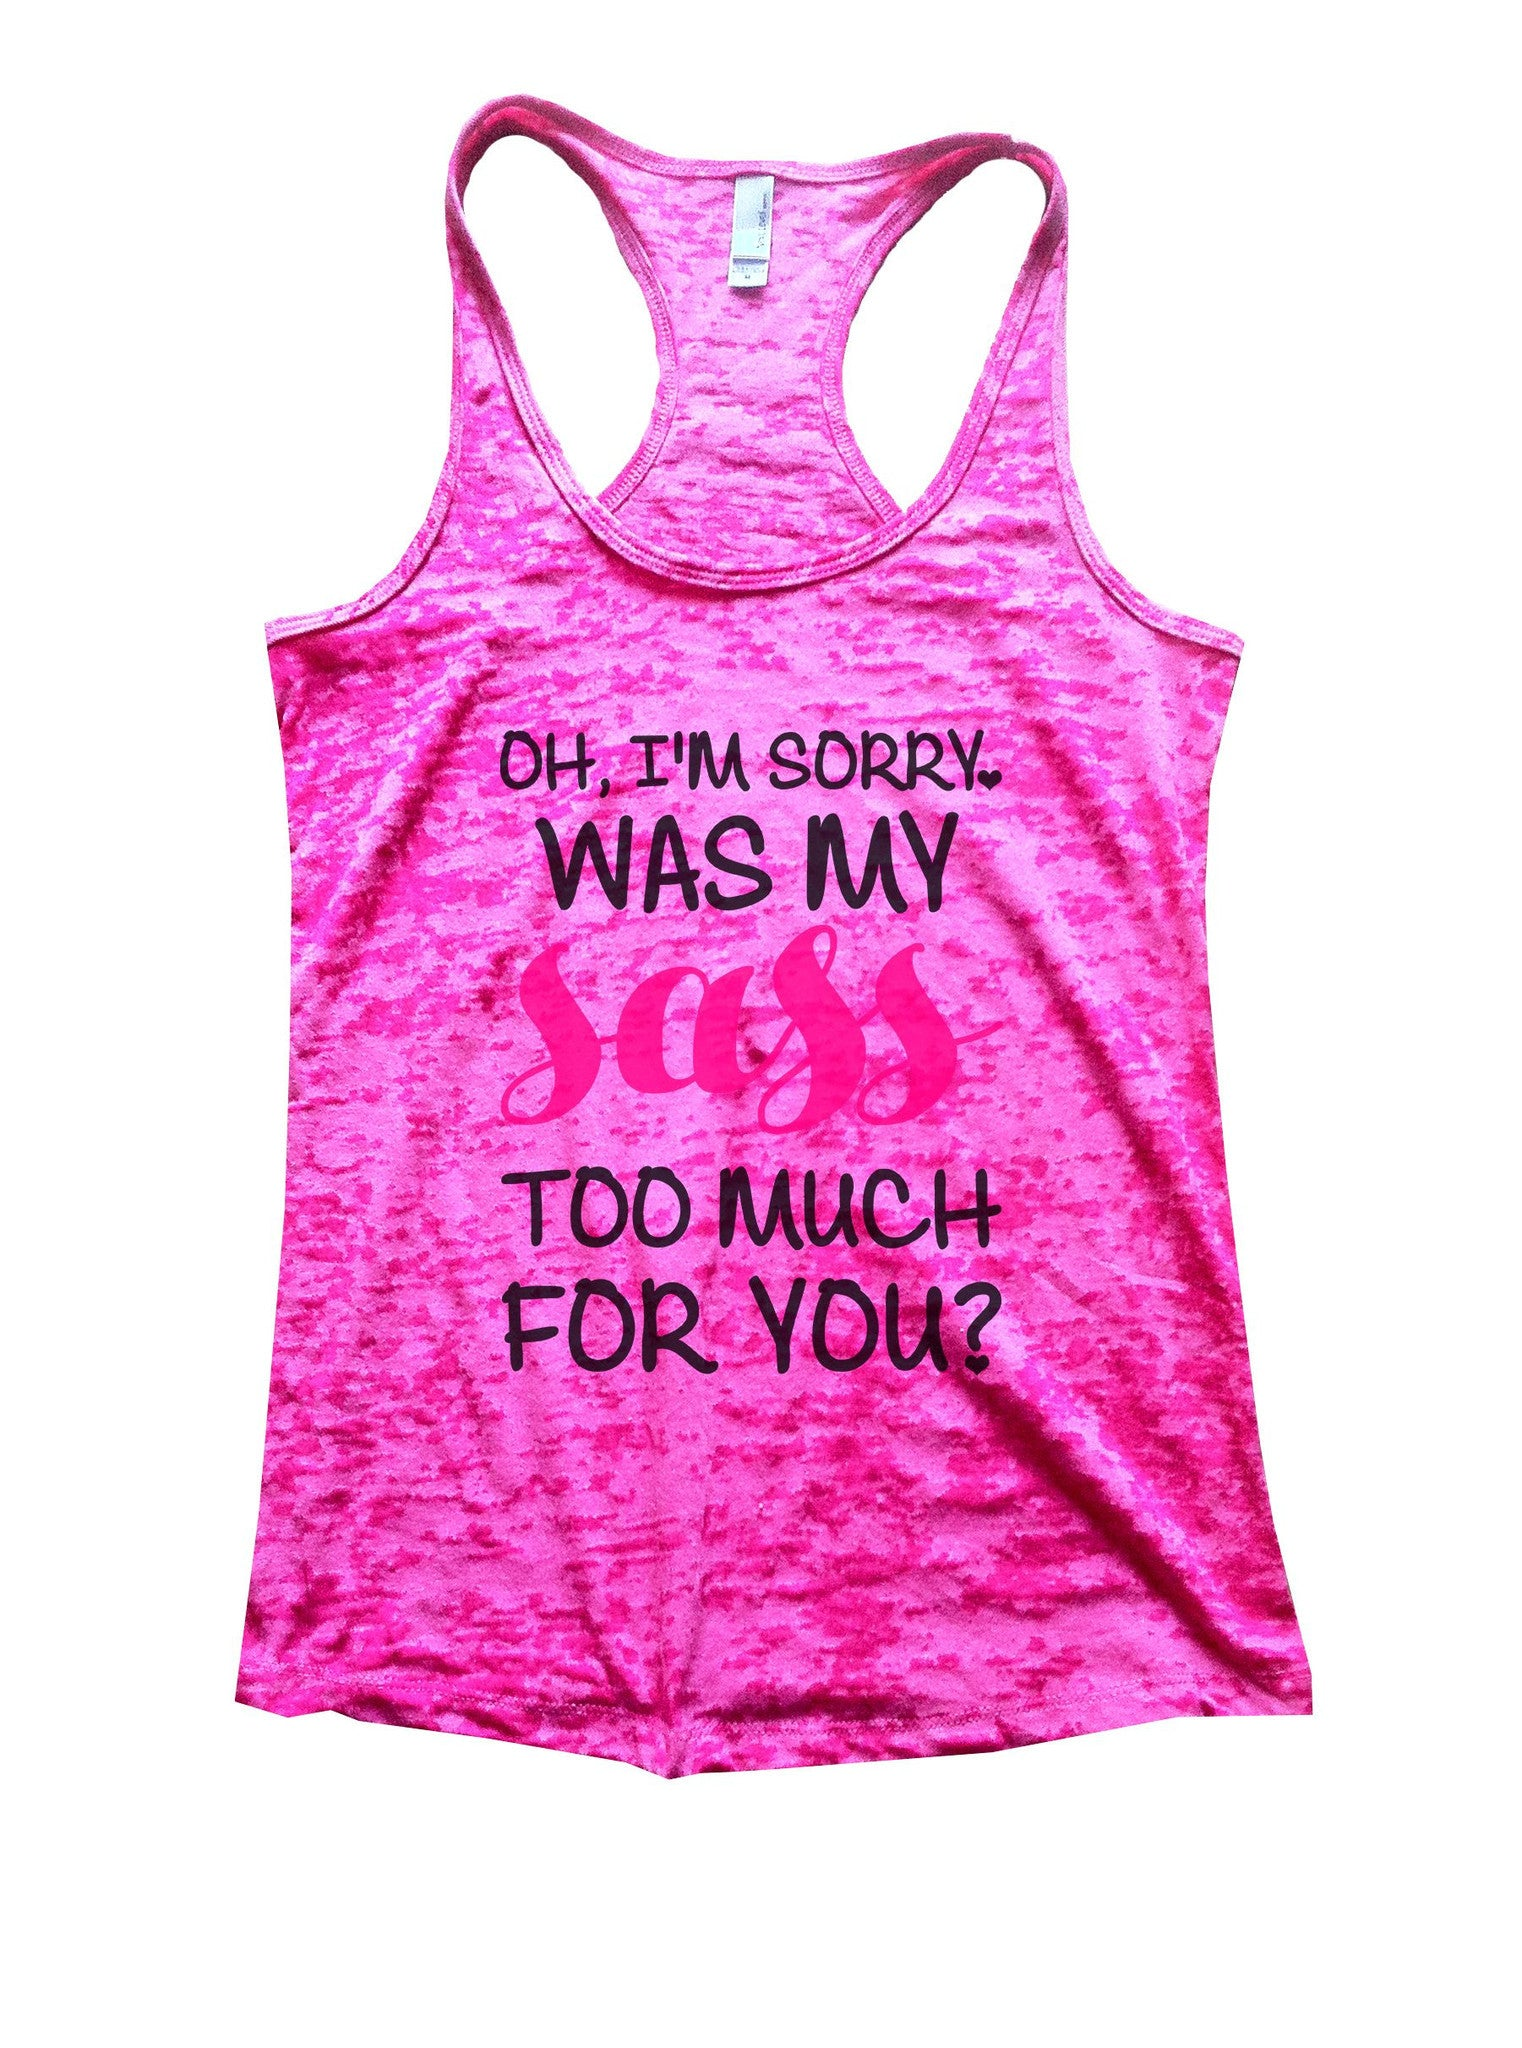 Oh, I'm Sorry, Was My Sass Too Much For You? Burnout Tank Top By BurnoutTankTops.com - 1117 - Funny Shirts Tank Tops Burnouts and Triblends  - 1